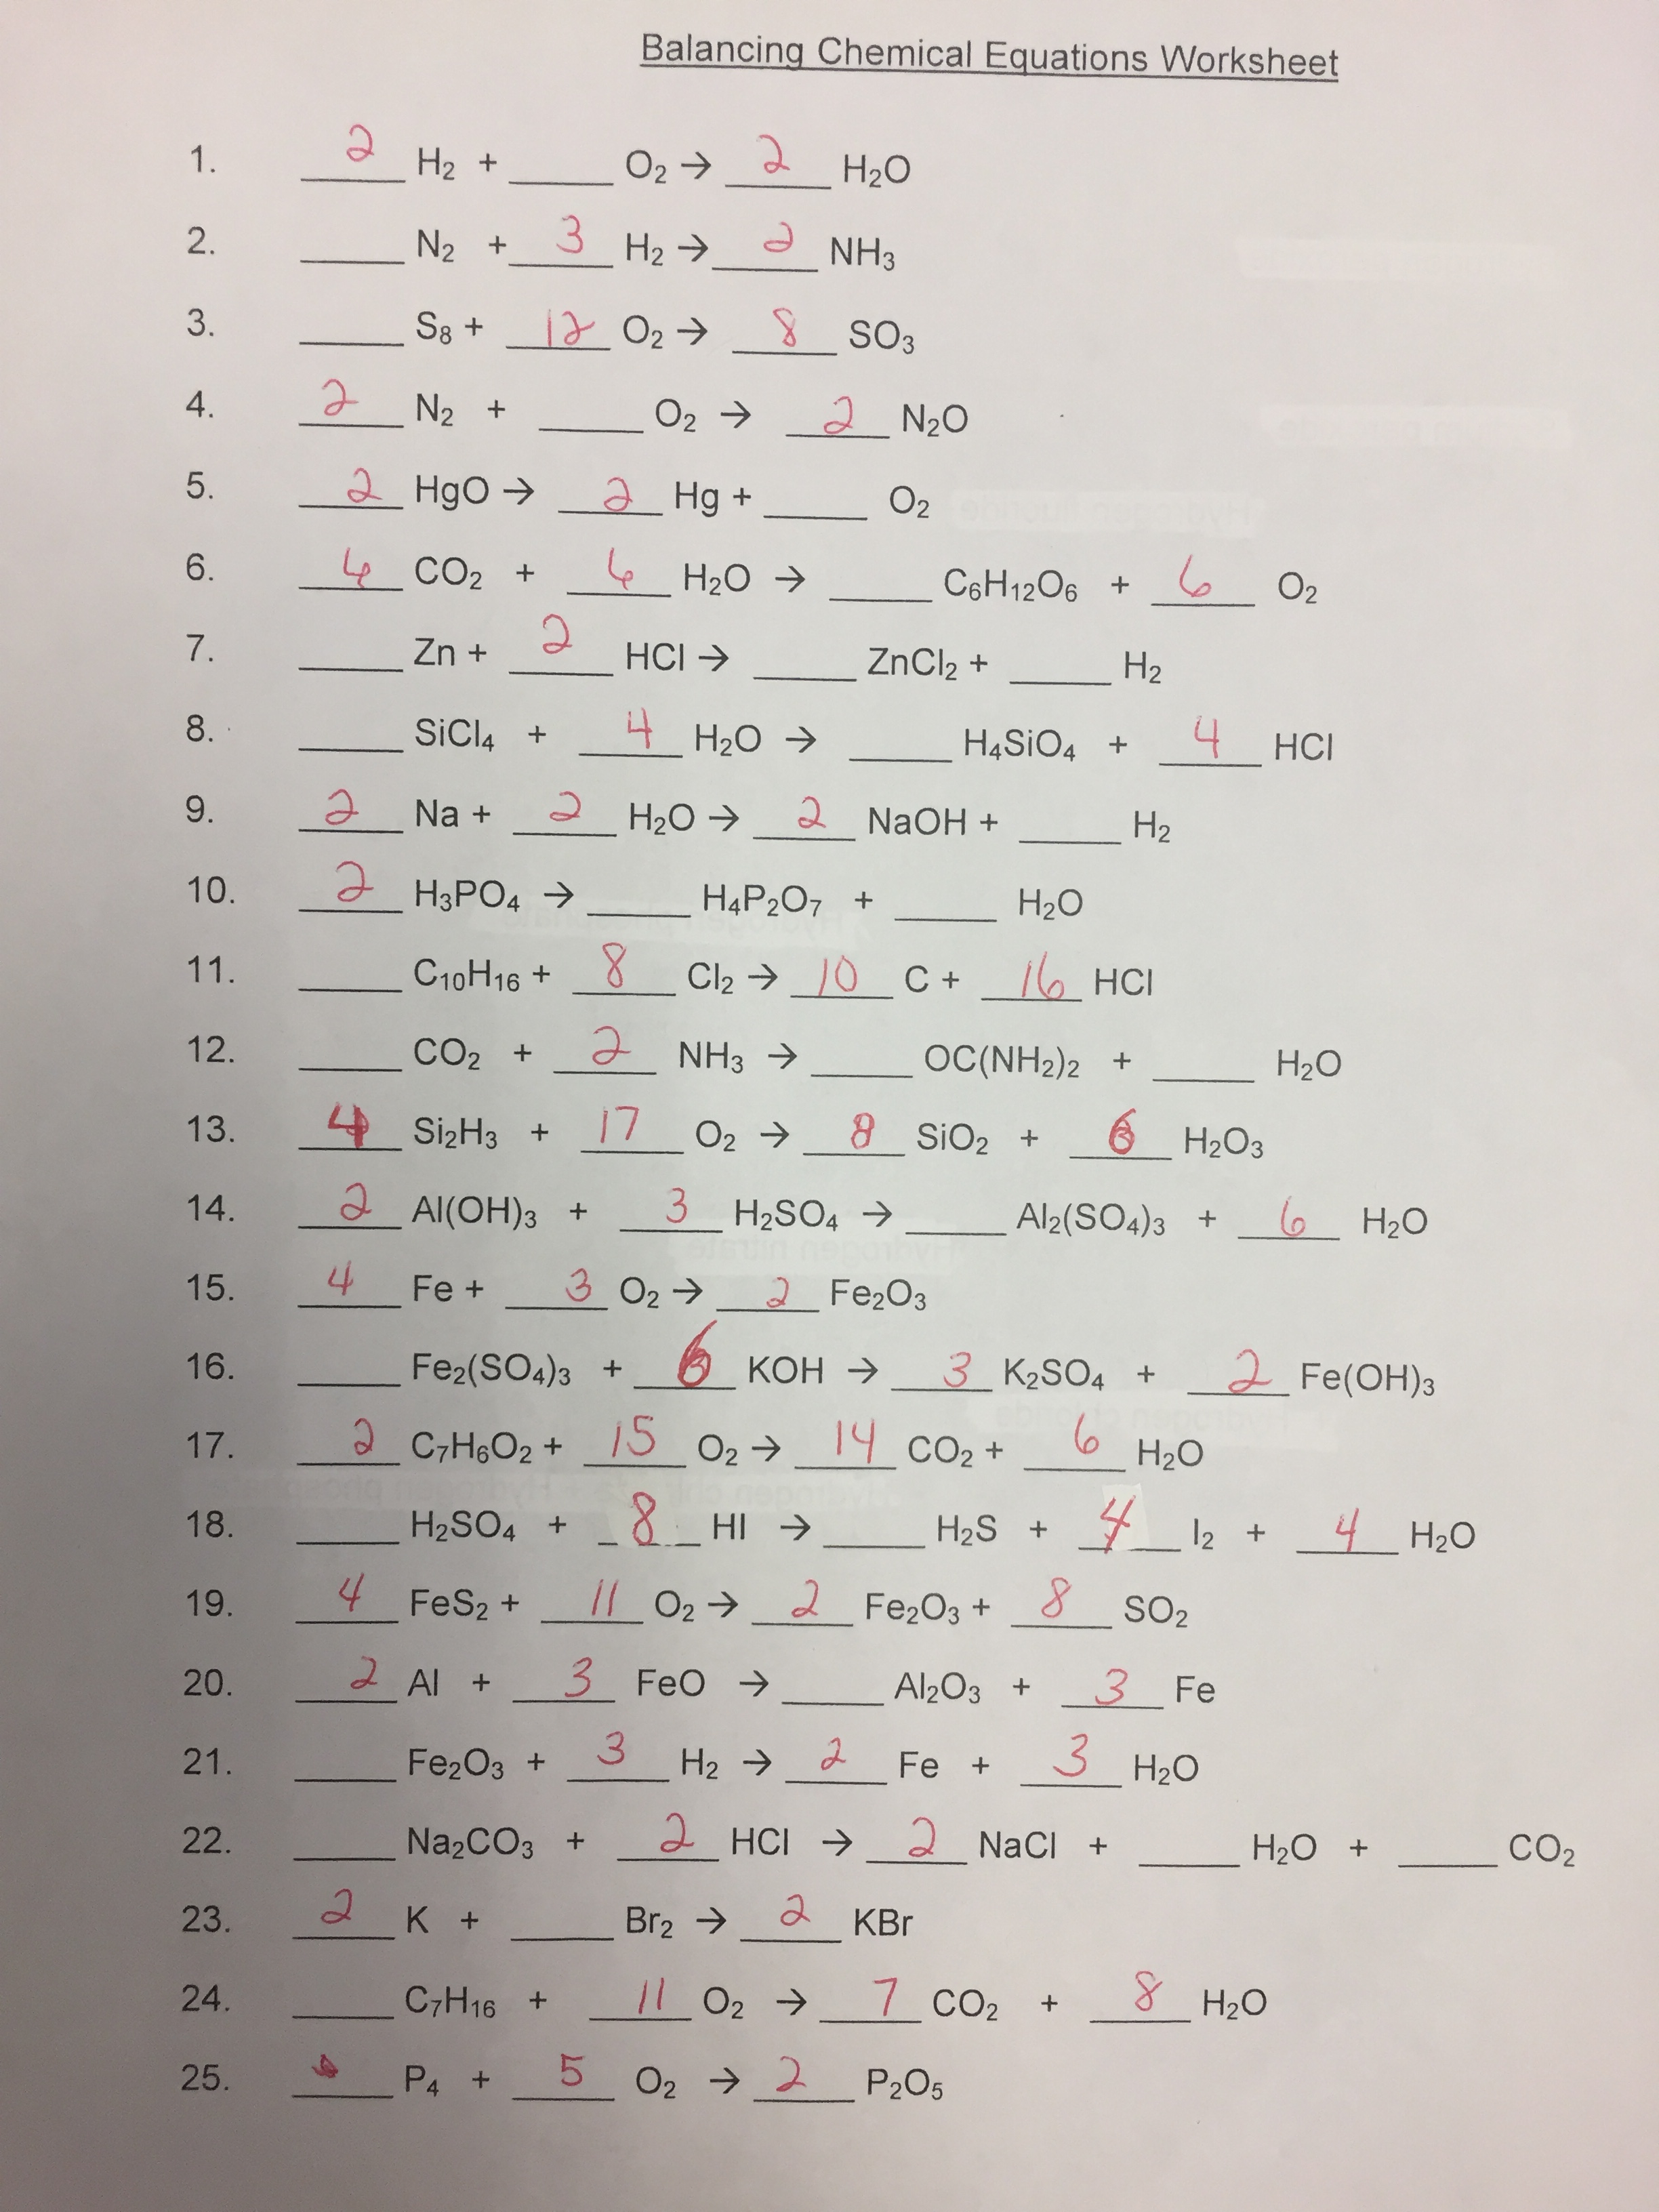 Worksheets Percent Yield Worksheet boyle kristin honors chemistry general info percent yield practice answers to front of 3rd balancing worksheet